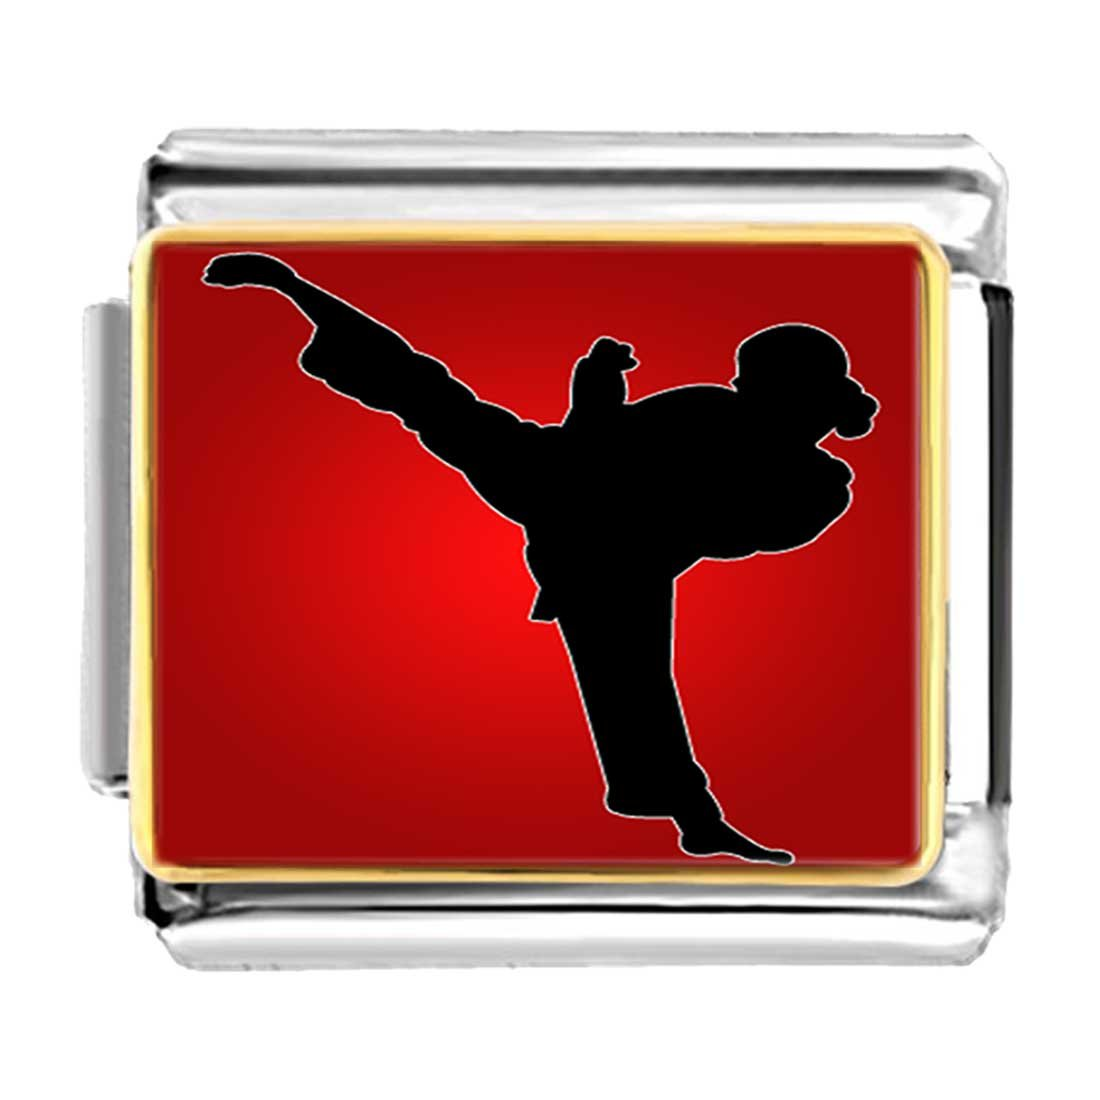 Gold Plated Olympics female taekwondo roundhouse kick to right Bracelet Link Photo Italian Charm